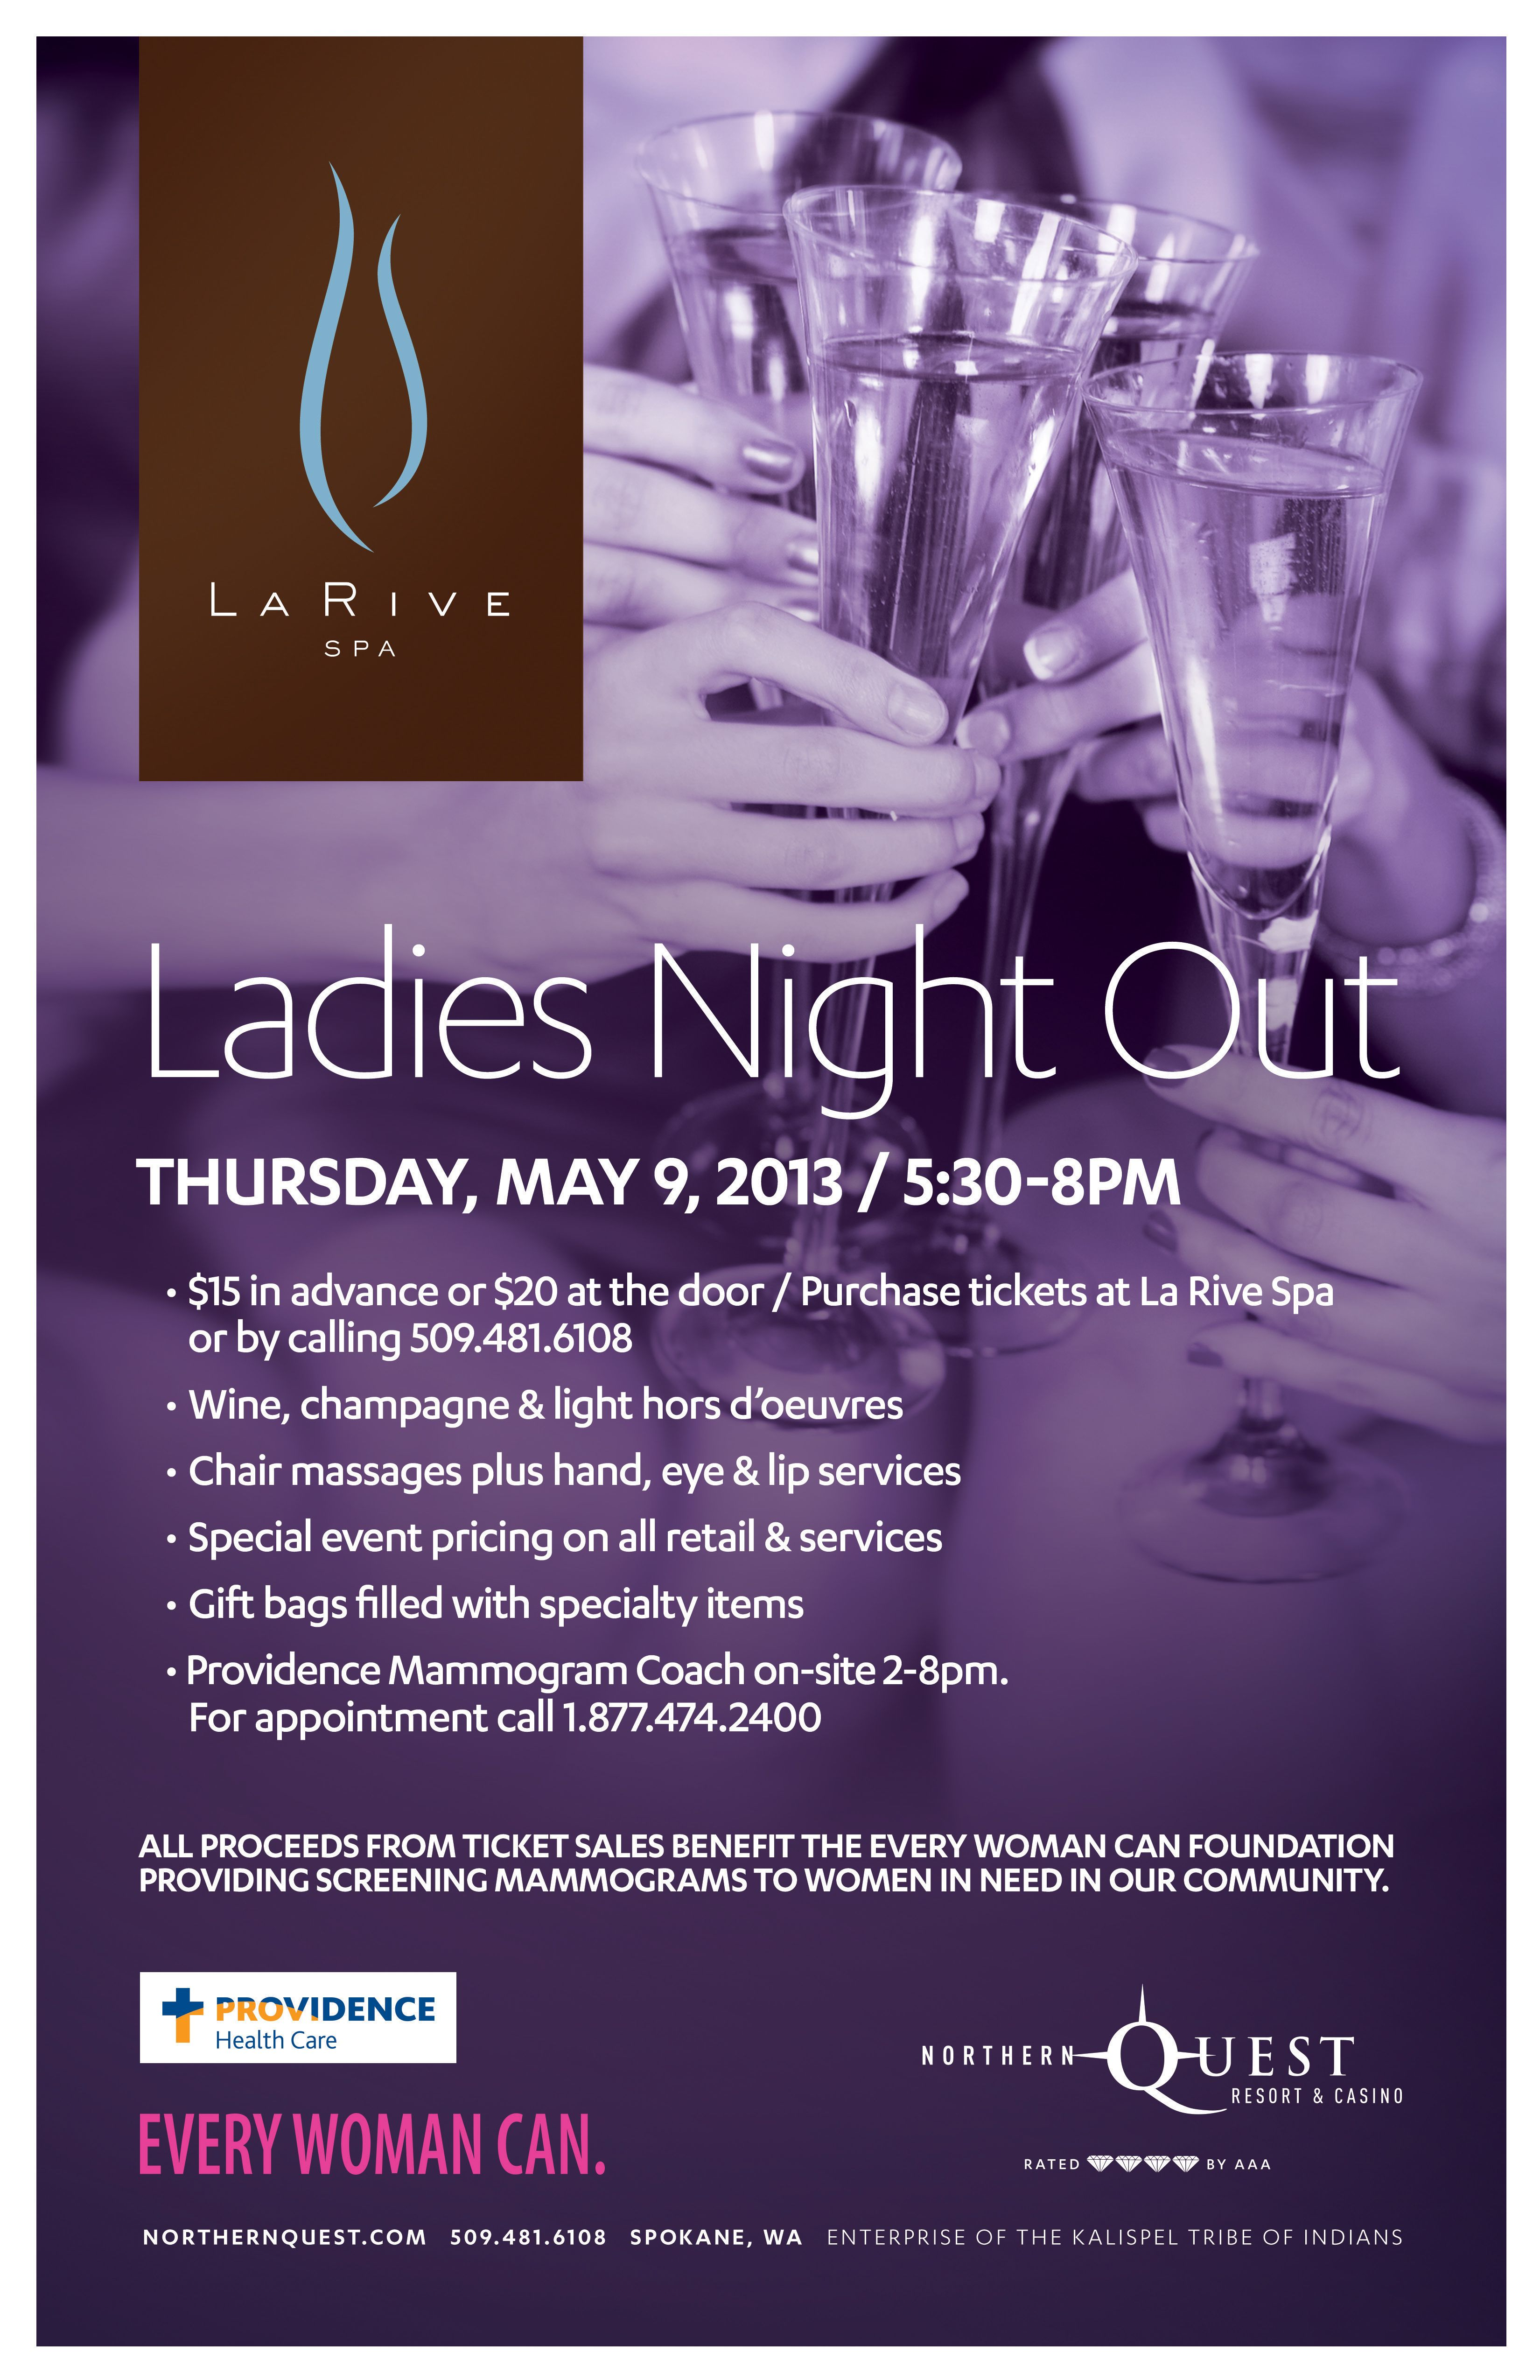 Ladies Night Out - Every Woman Can event at La Rive Spa #Spokane https: